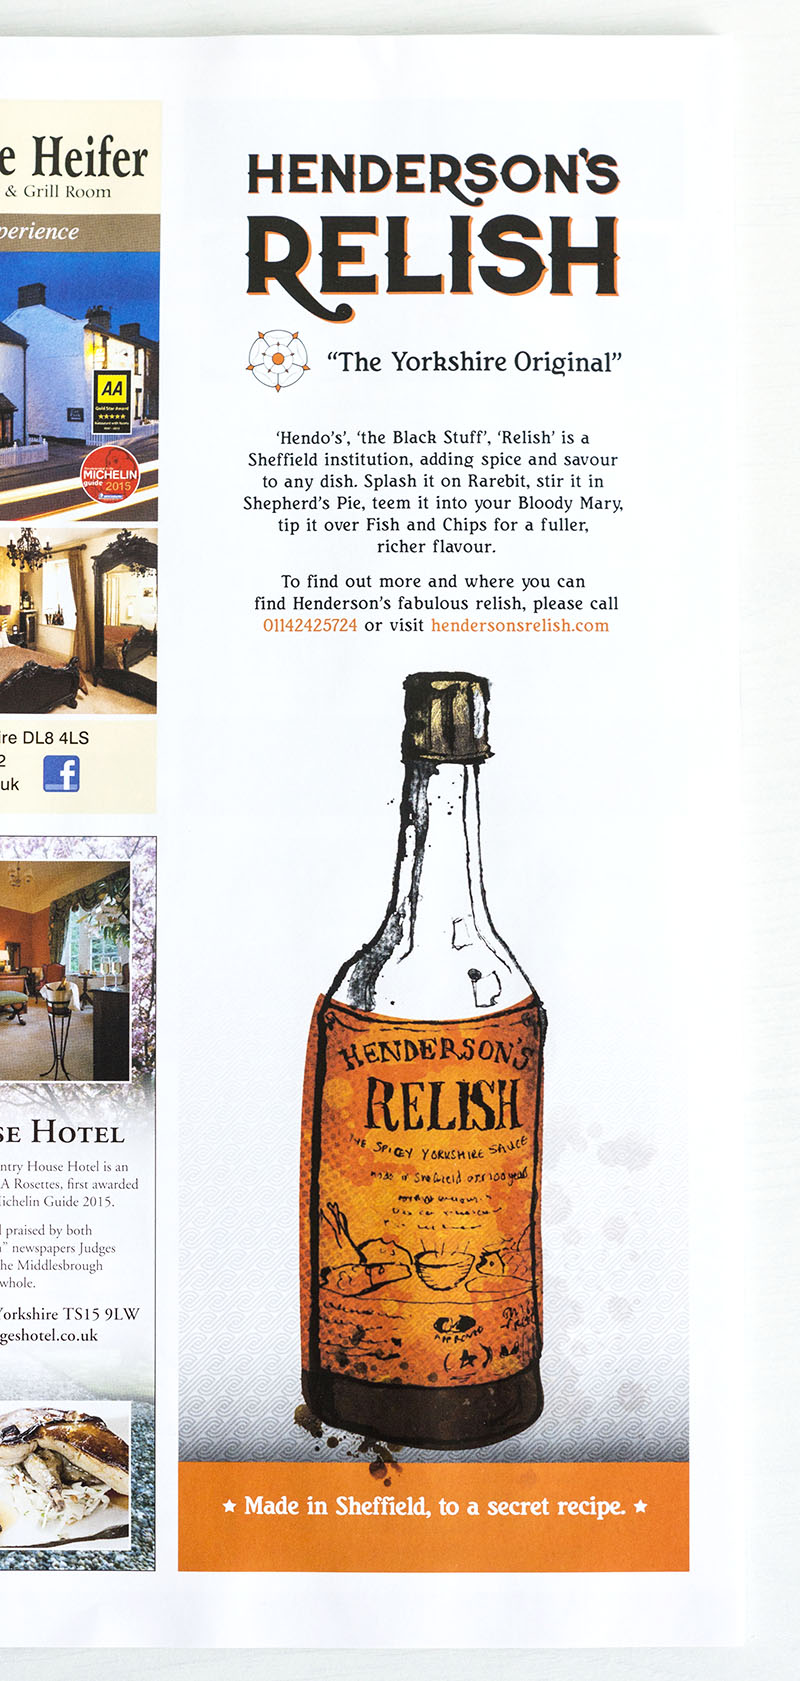 henderson's relish advert